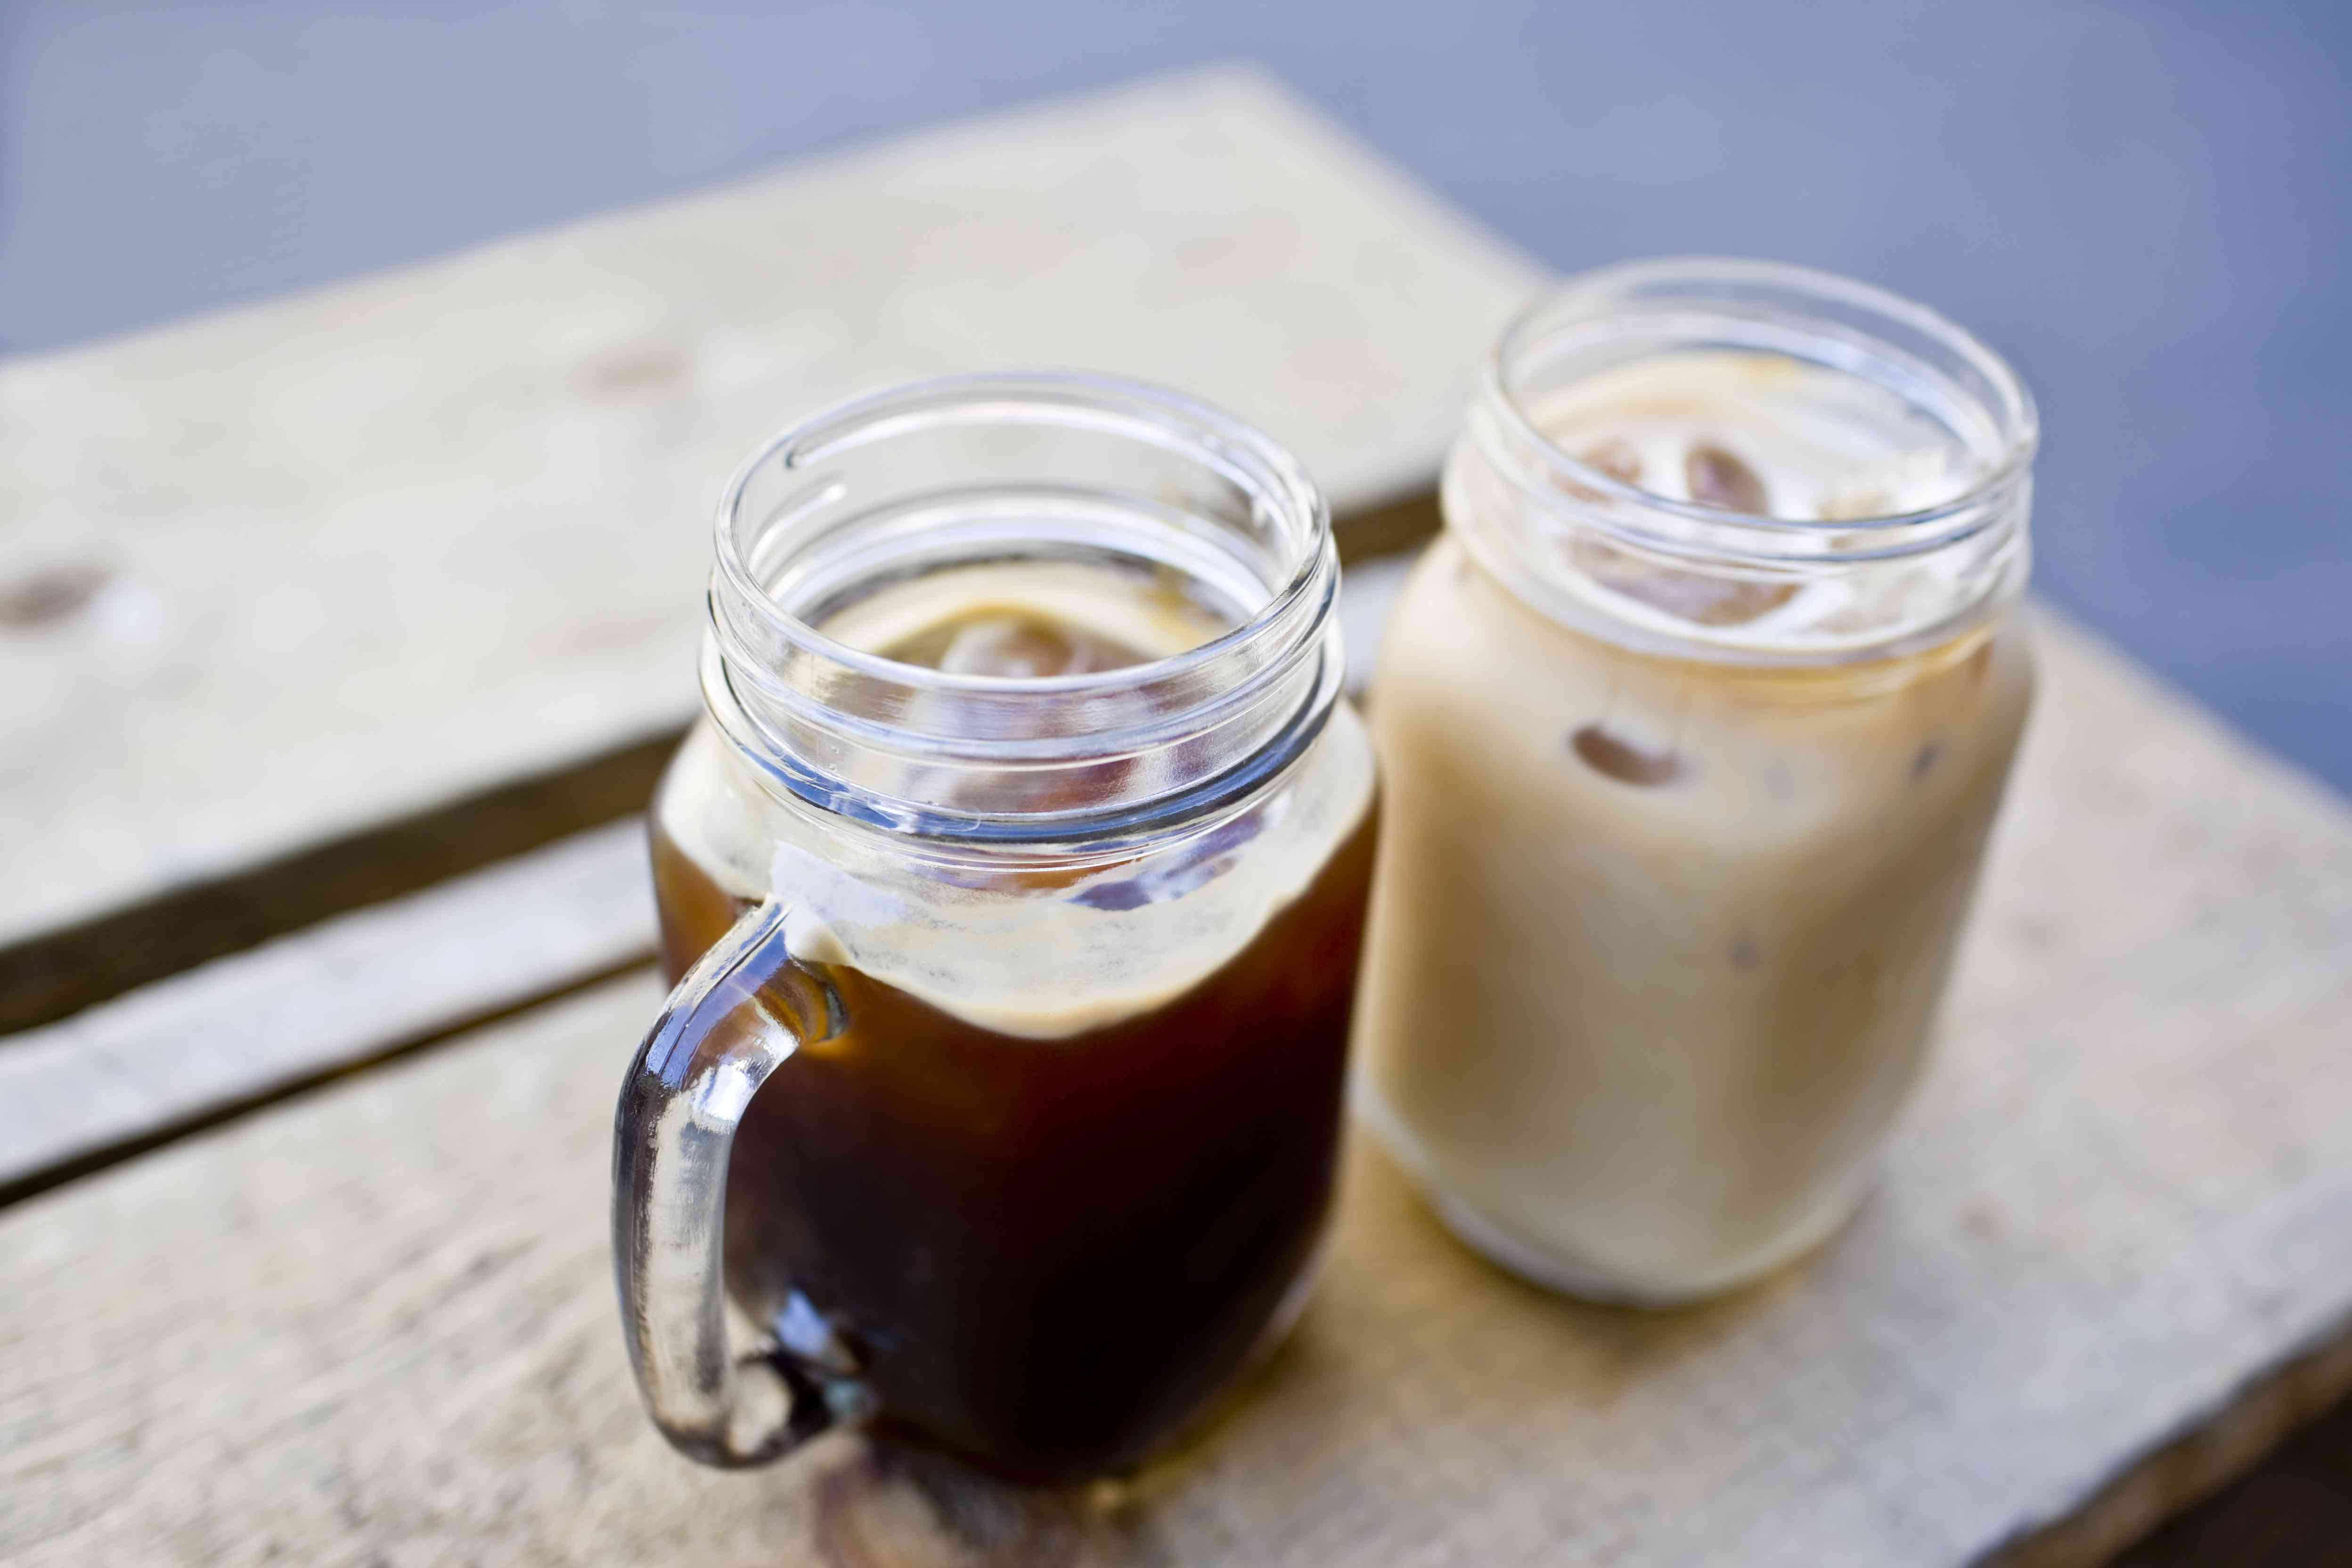 Two iced coffees in glass mugs on an outside table